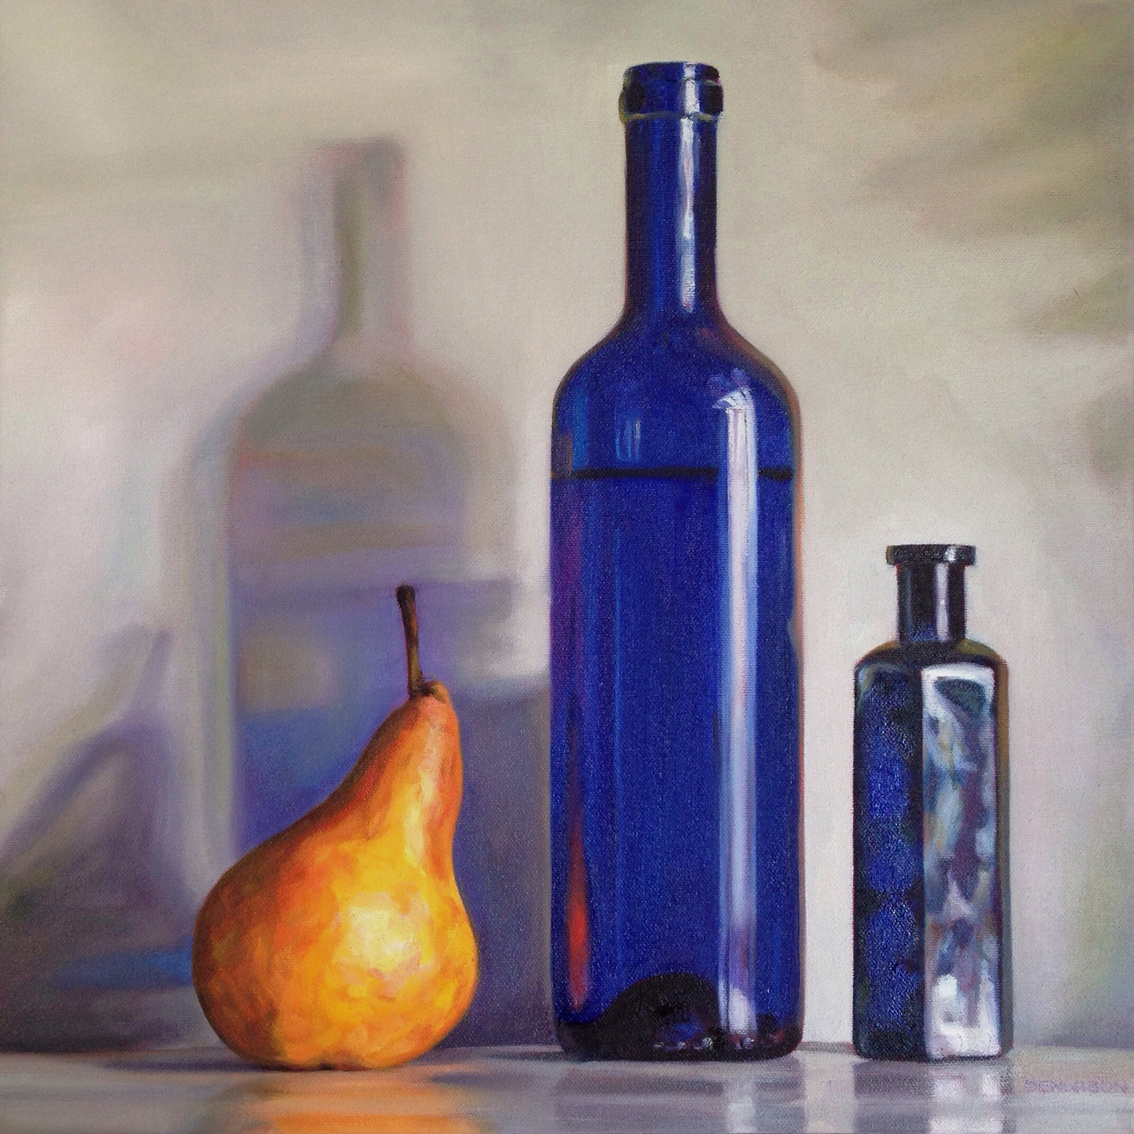 Beurre Bosc and Blue Bottles   Oil on Canvas, 41cm x 41cm